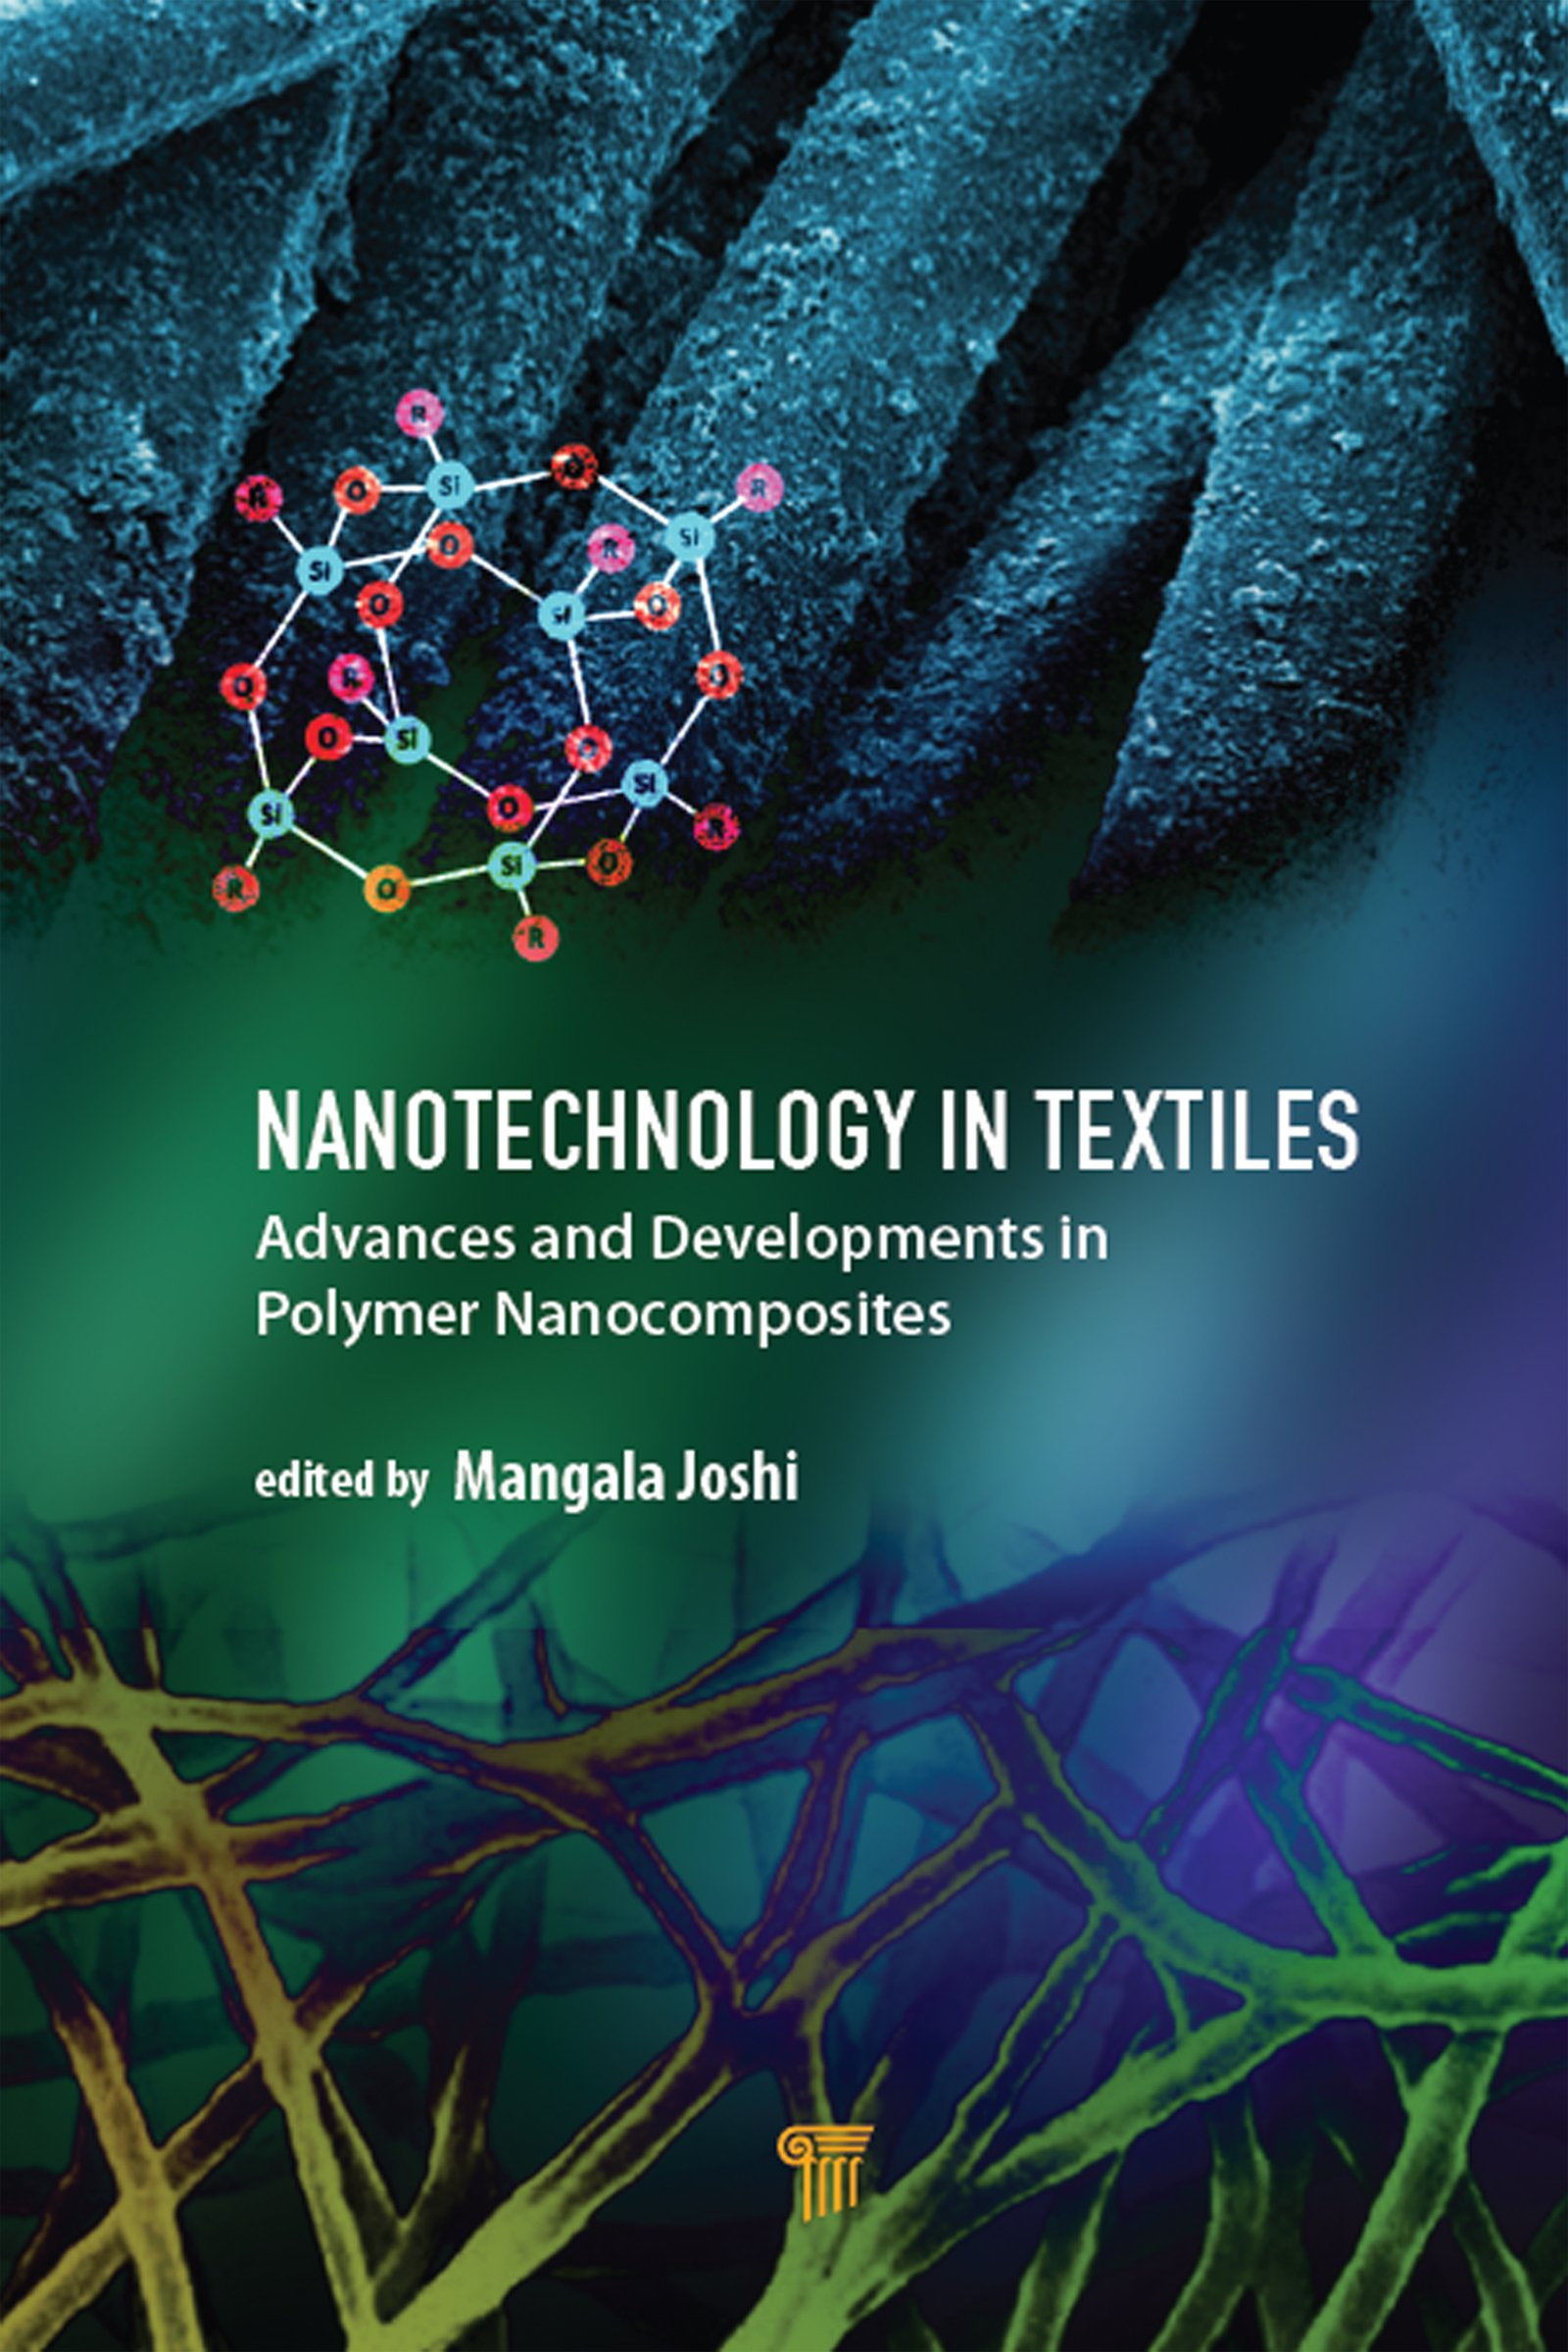 Polymer Nanocomposite Fibers Based on Carbon Nanomaterial for Enhanced Electrical Properties